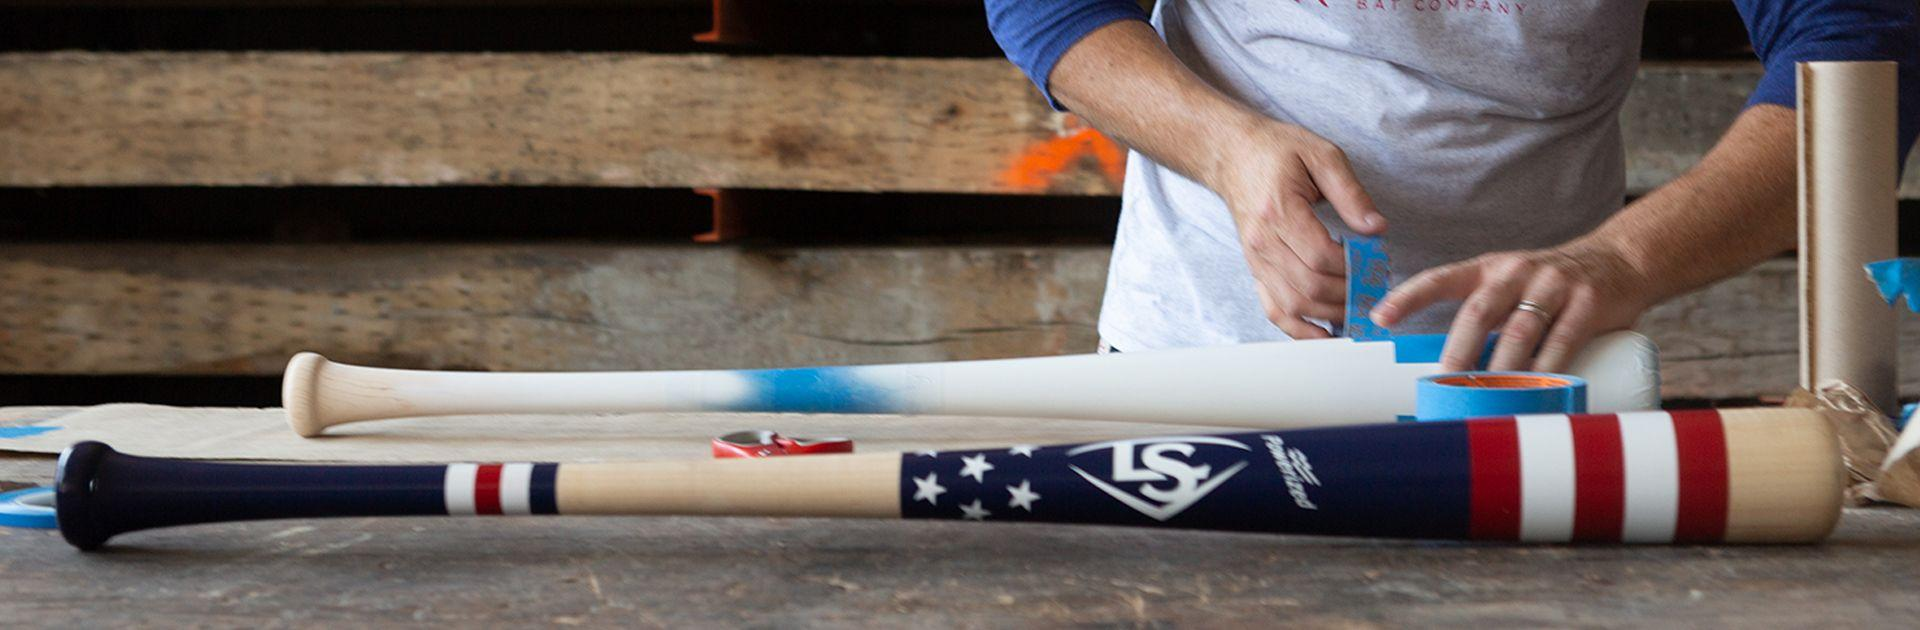 Video of A collaboration in craftsmanship: Louisville Slugger and Mitchell Bat Co.